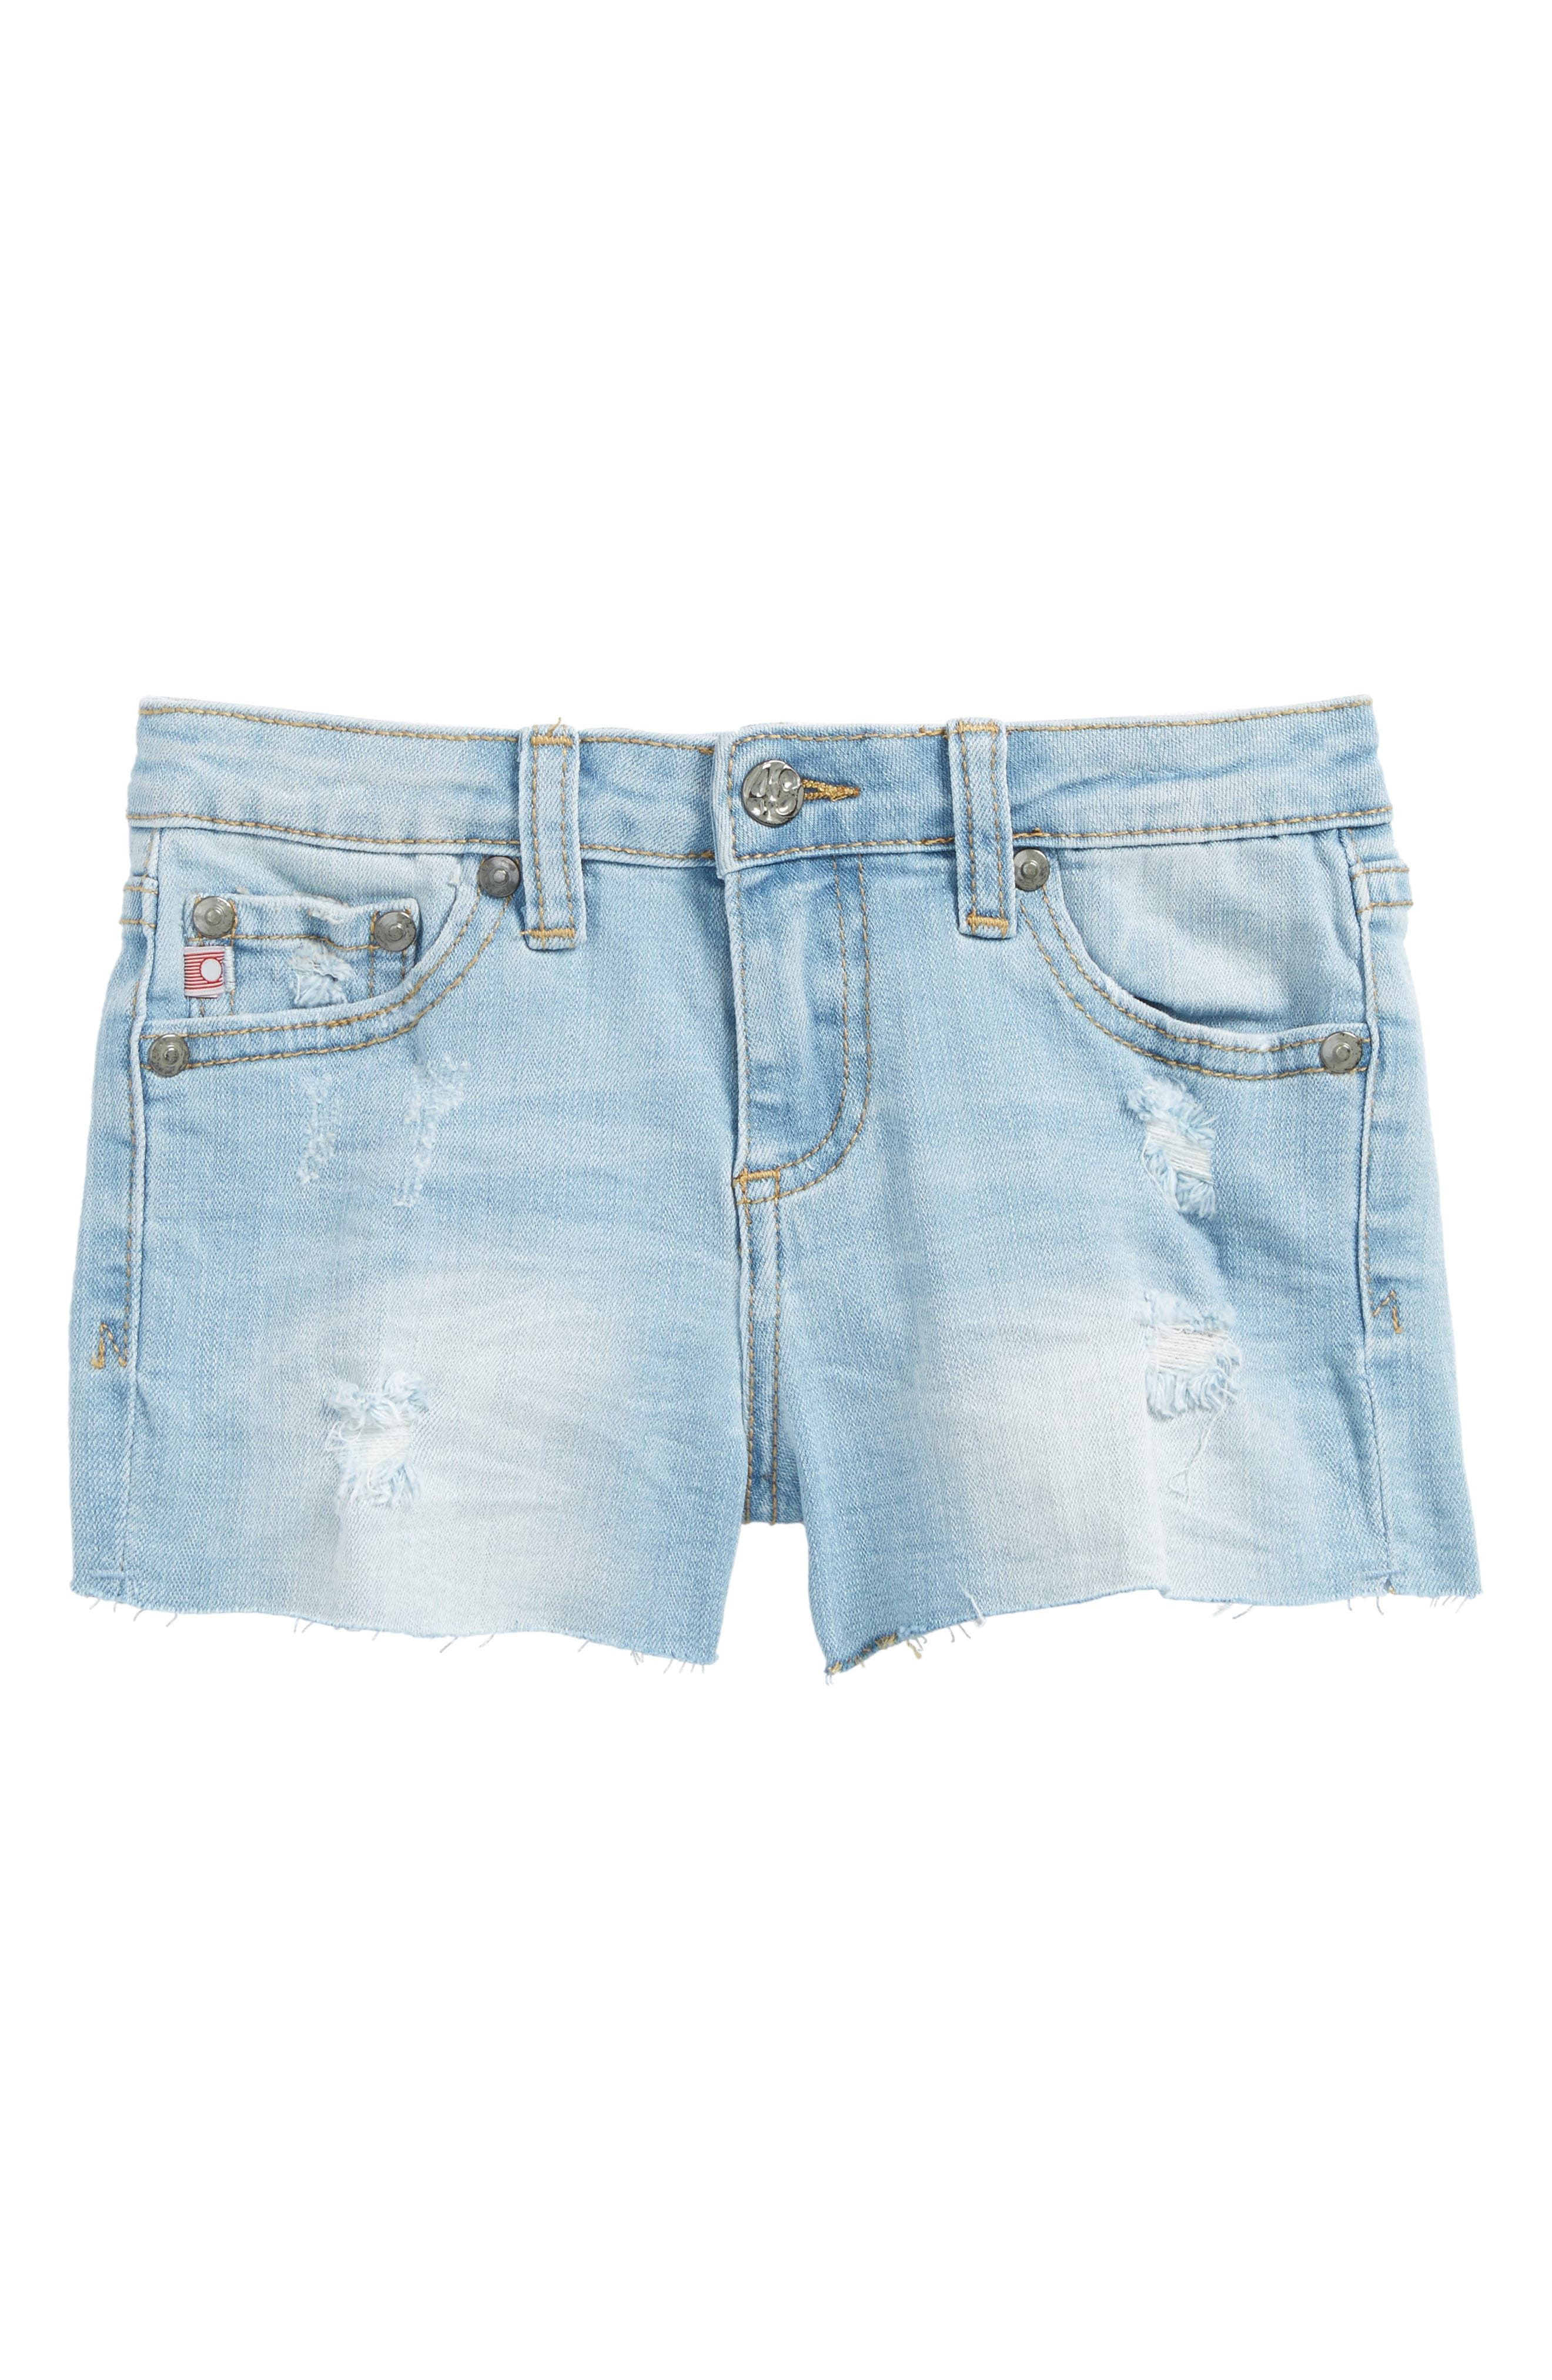 Main Image - ag adriano goldschmied kids The Shelby Cutoff Shorts (Toddler Girls & Little Girls)